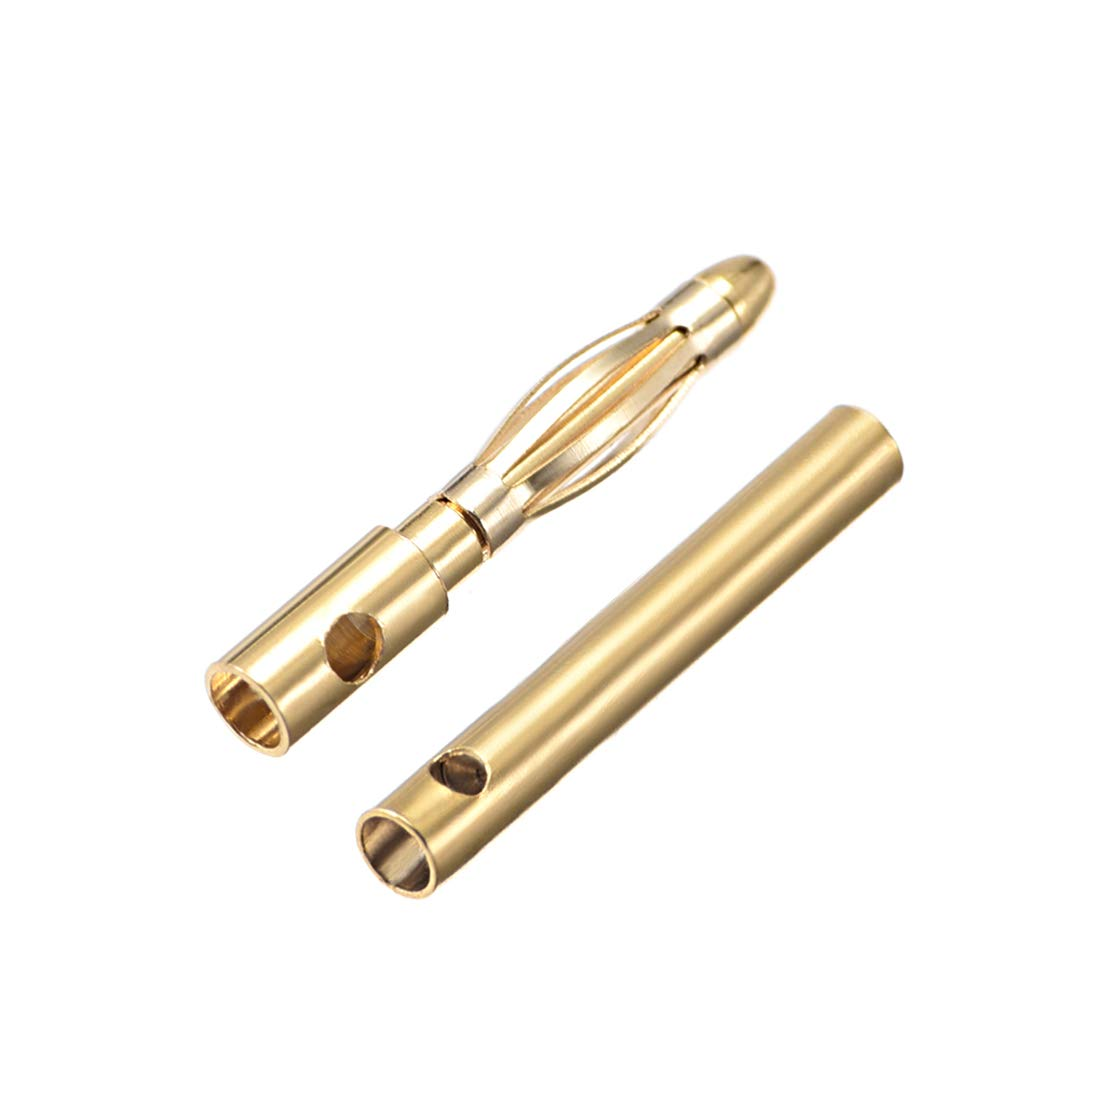 #0220 6 Male + 6 Female uxcell 6 Pairs 2mm Gold Plated Male /& Female Bullets Connectors Banana Plugs